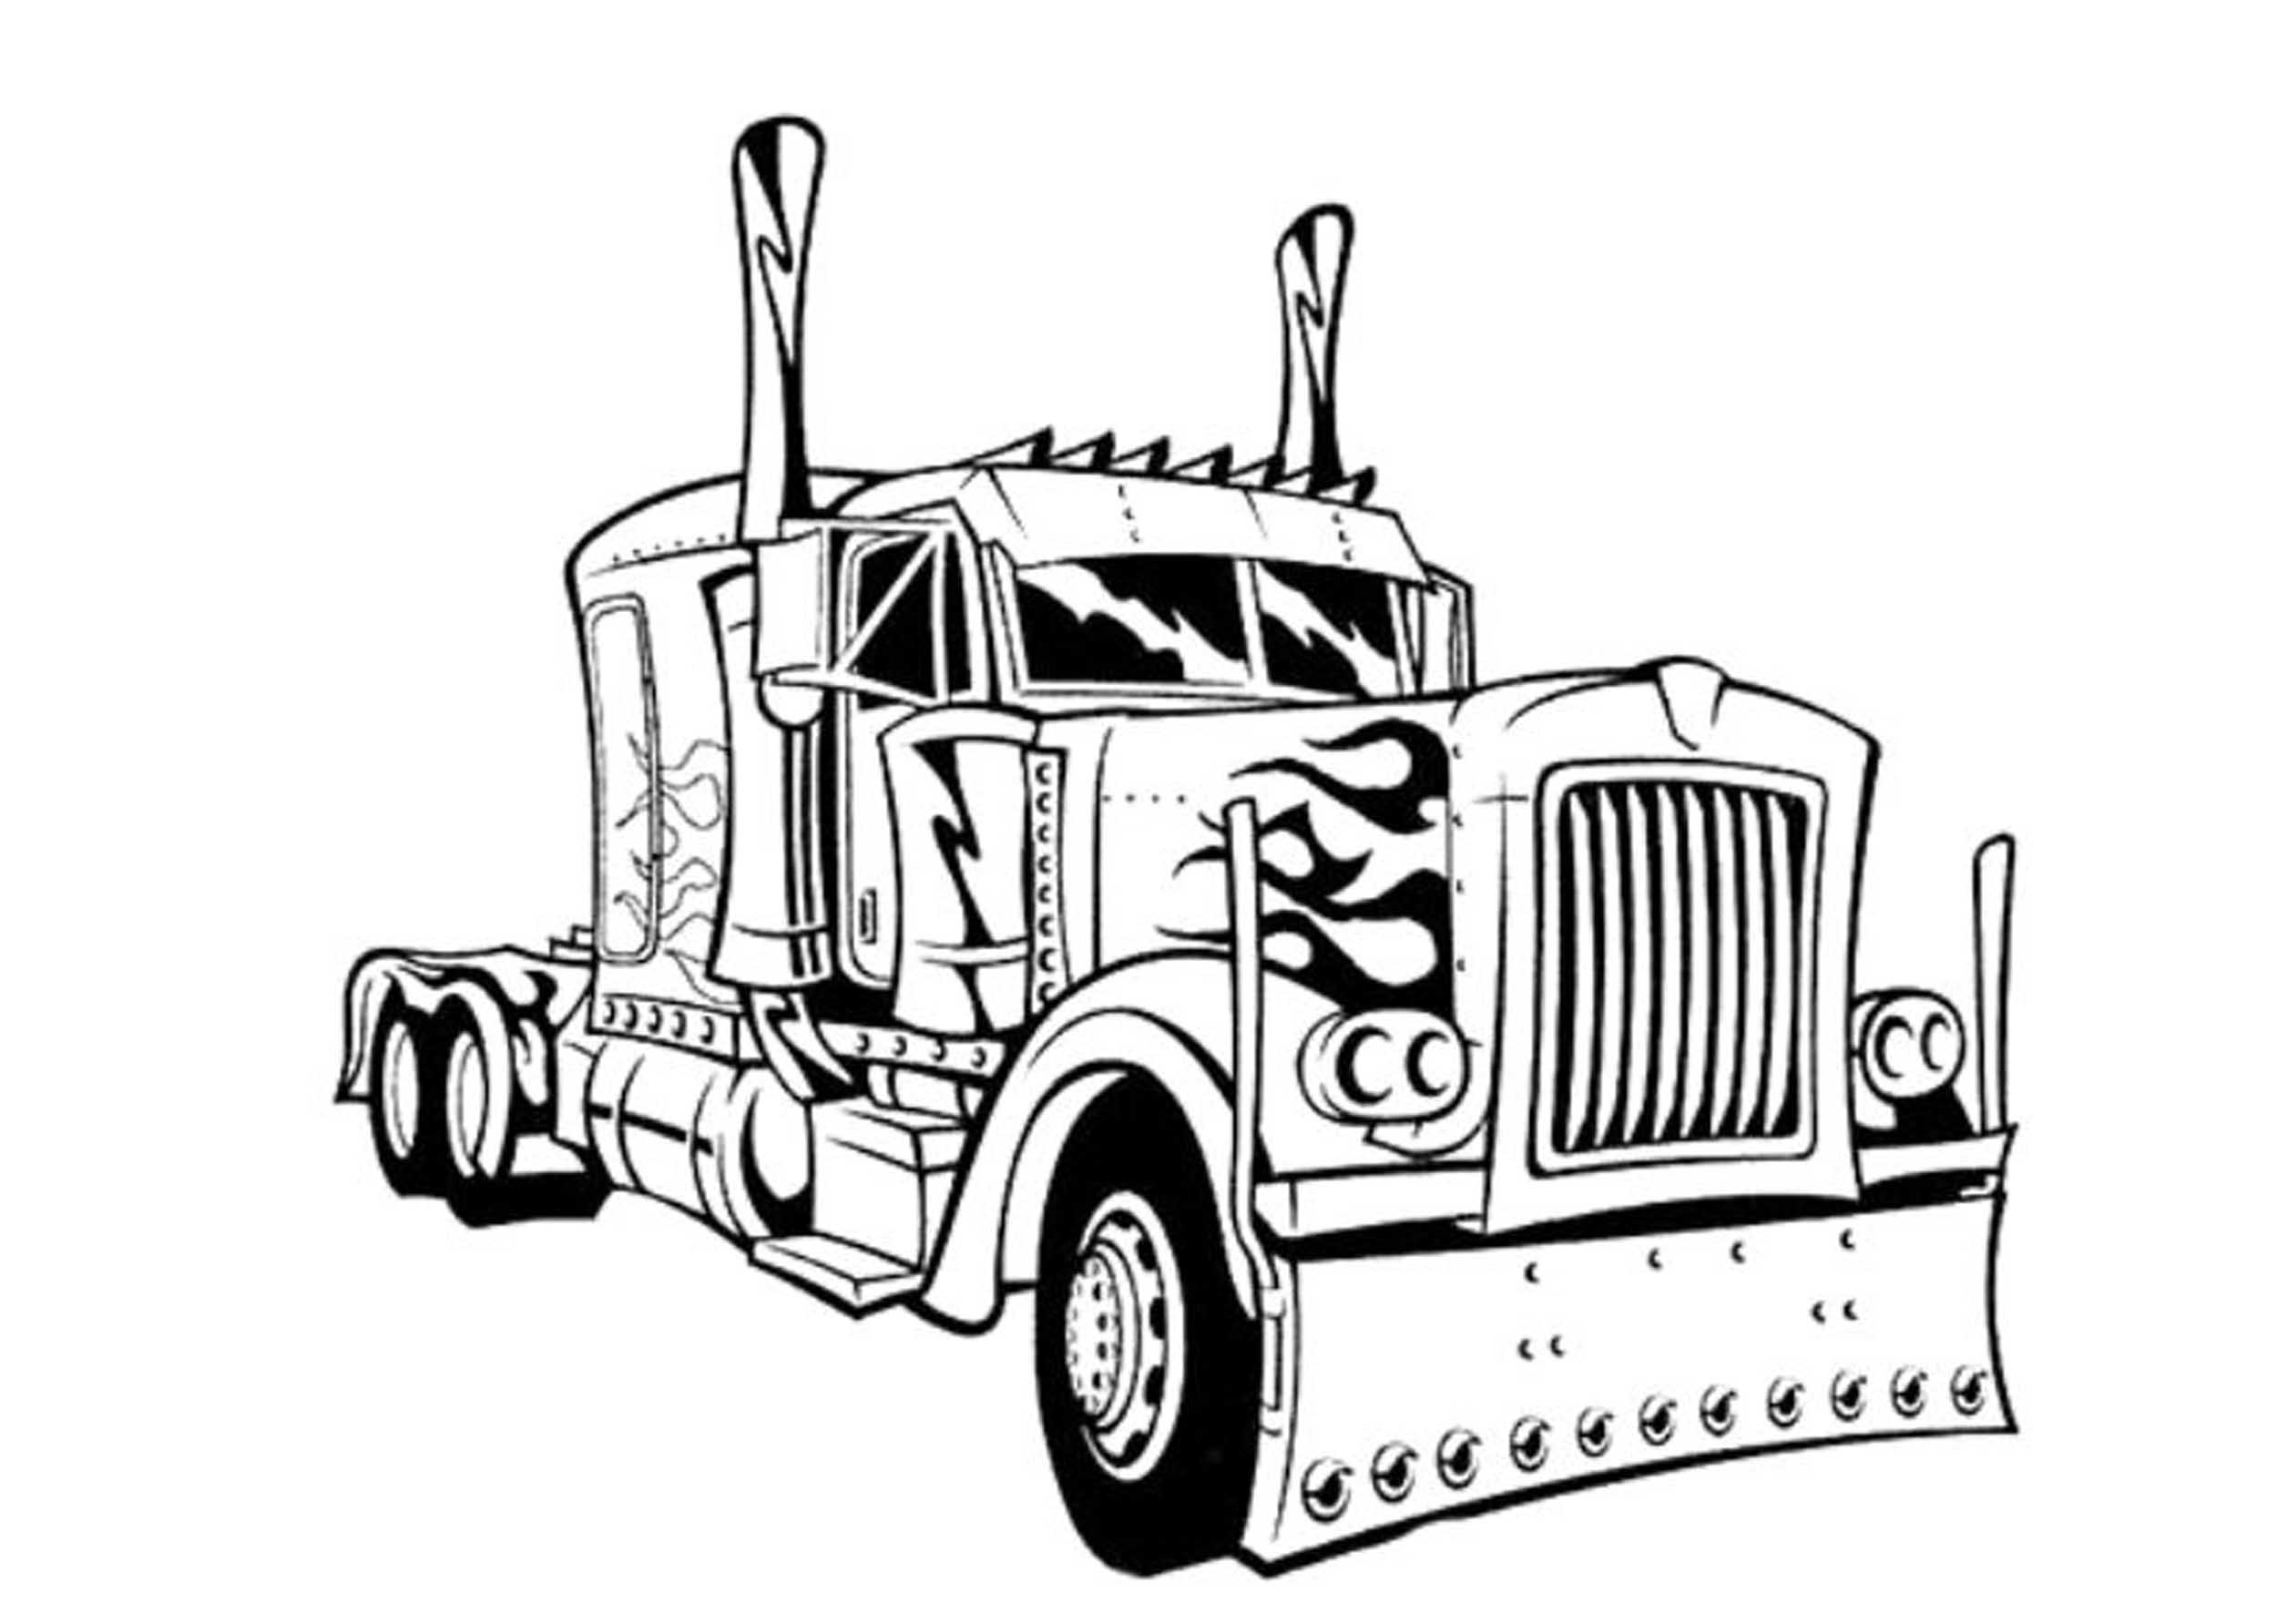 Coloring pages by numbers for kids of trucks - Check